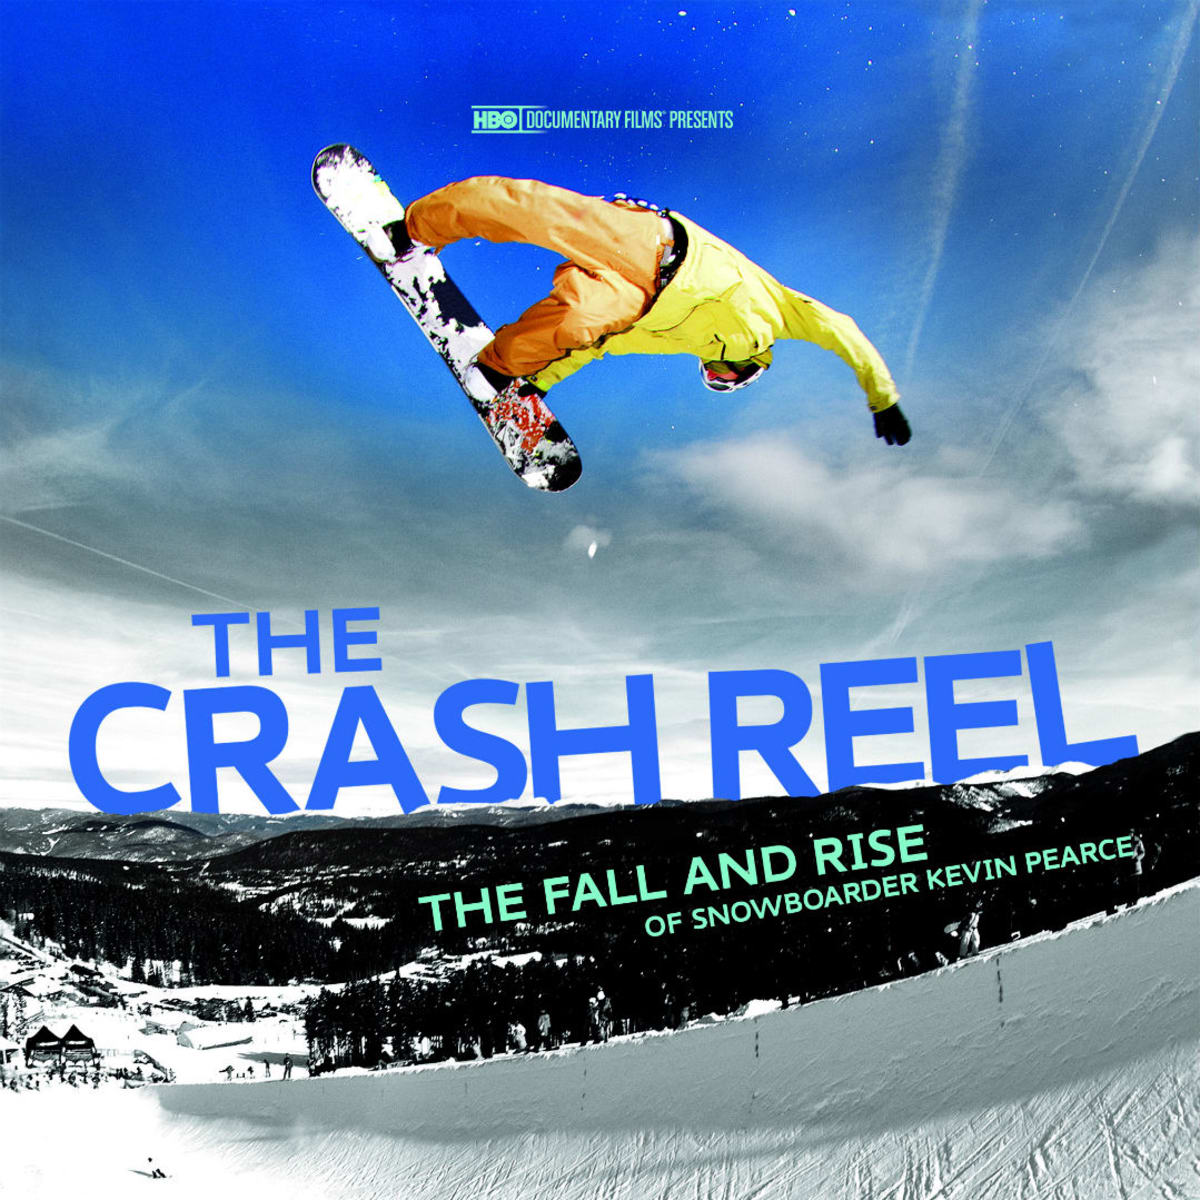 Dallas International Film Festival, The Crash Reel